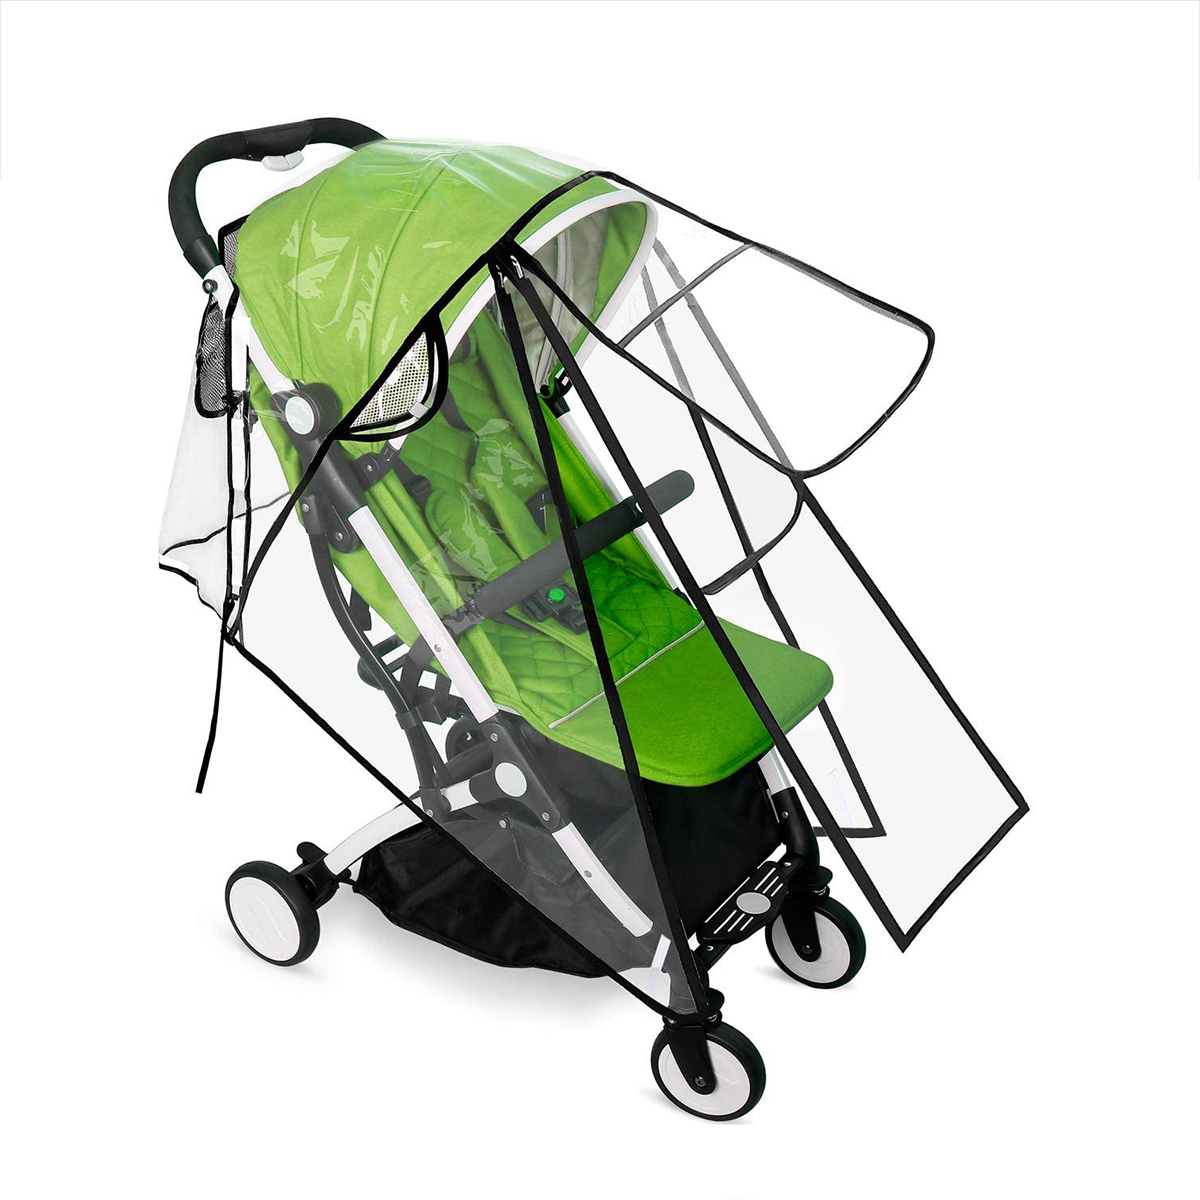 Hot Universal Stroller Rain Cover, Double Door Design & Large Storage Baby Stroller Weather Shield, Waterproof Stroller Cover